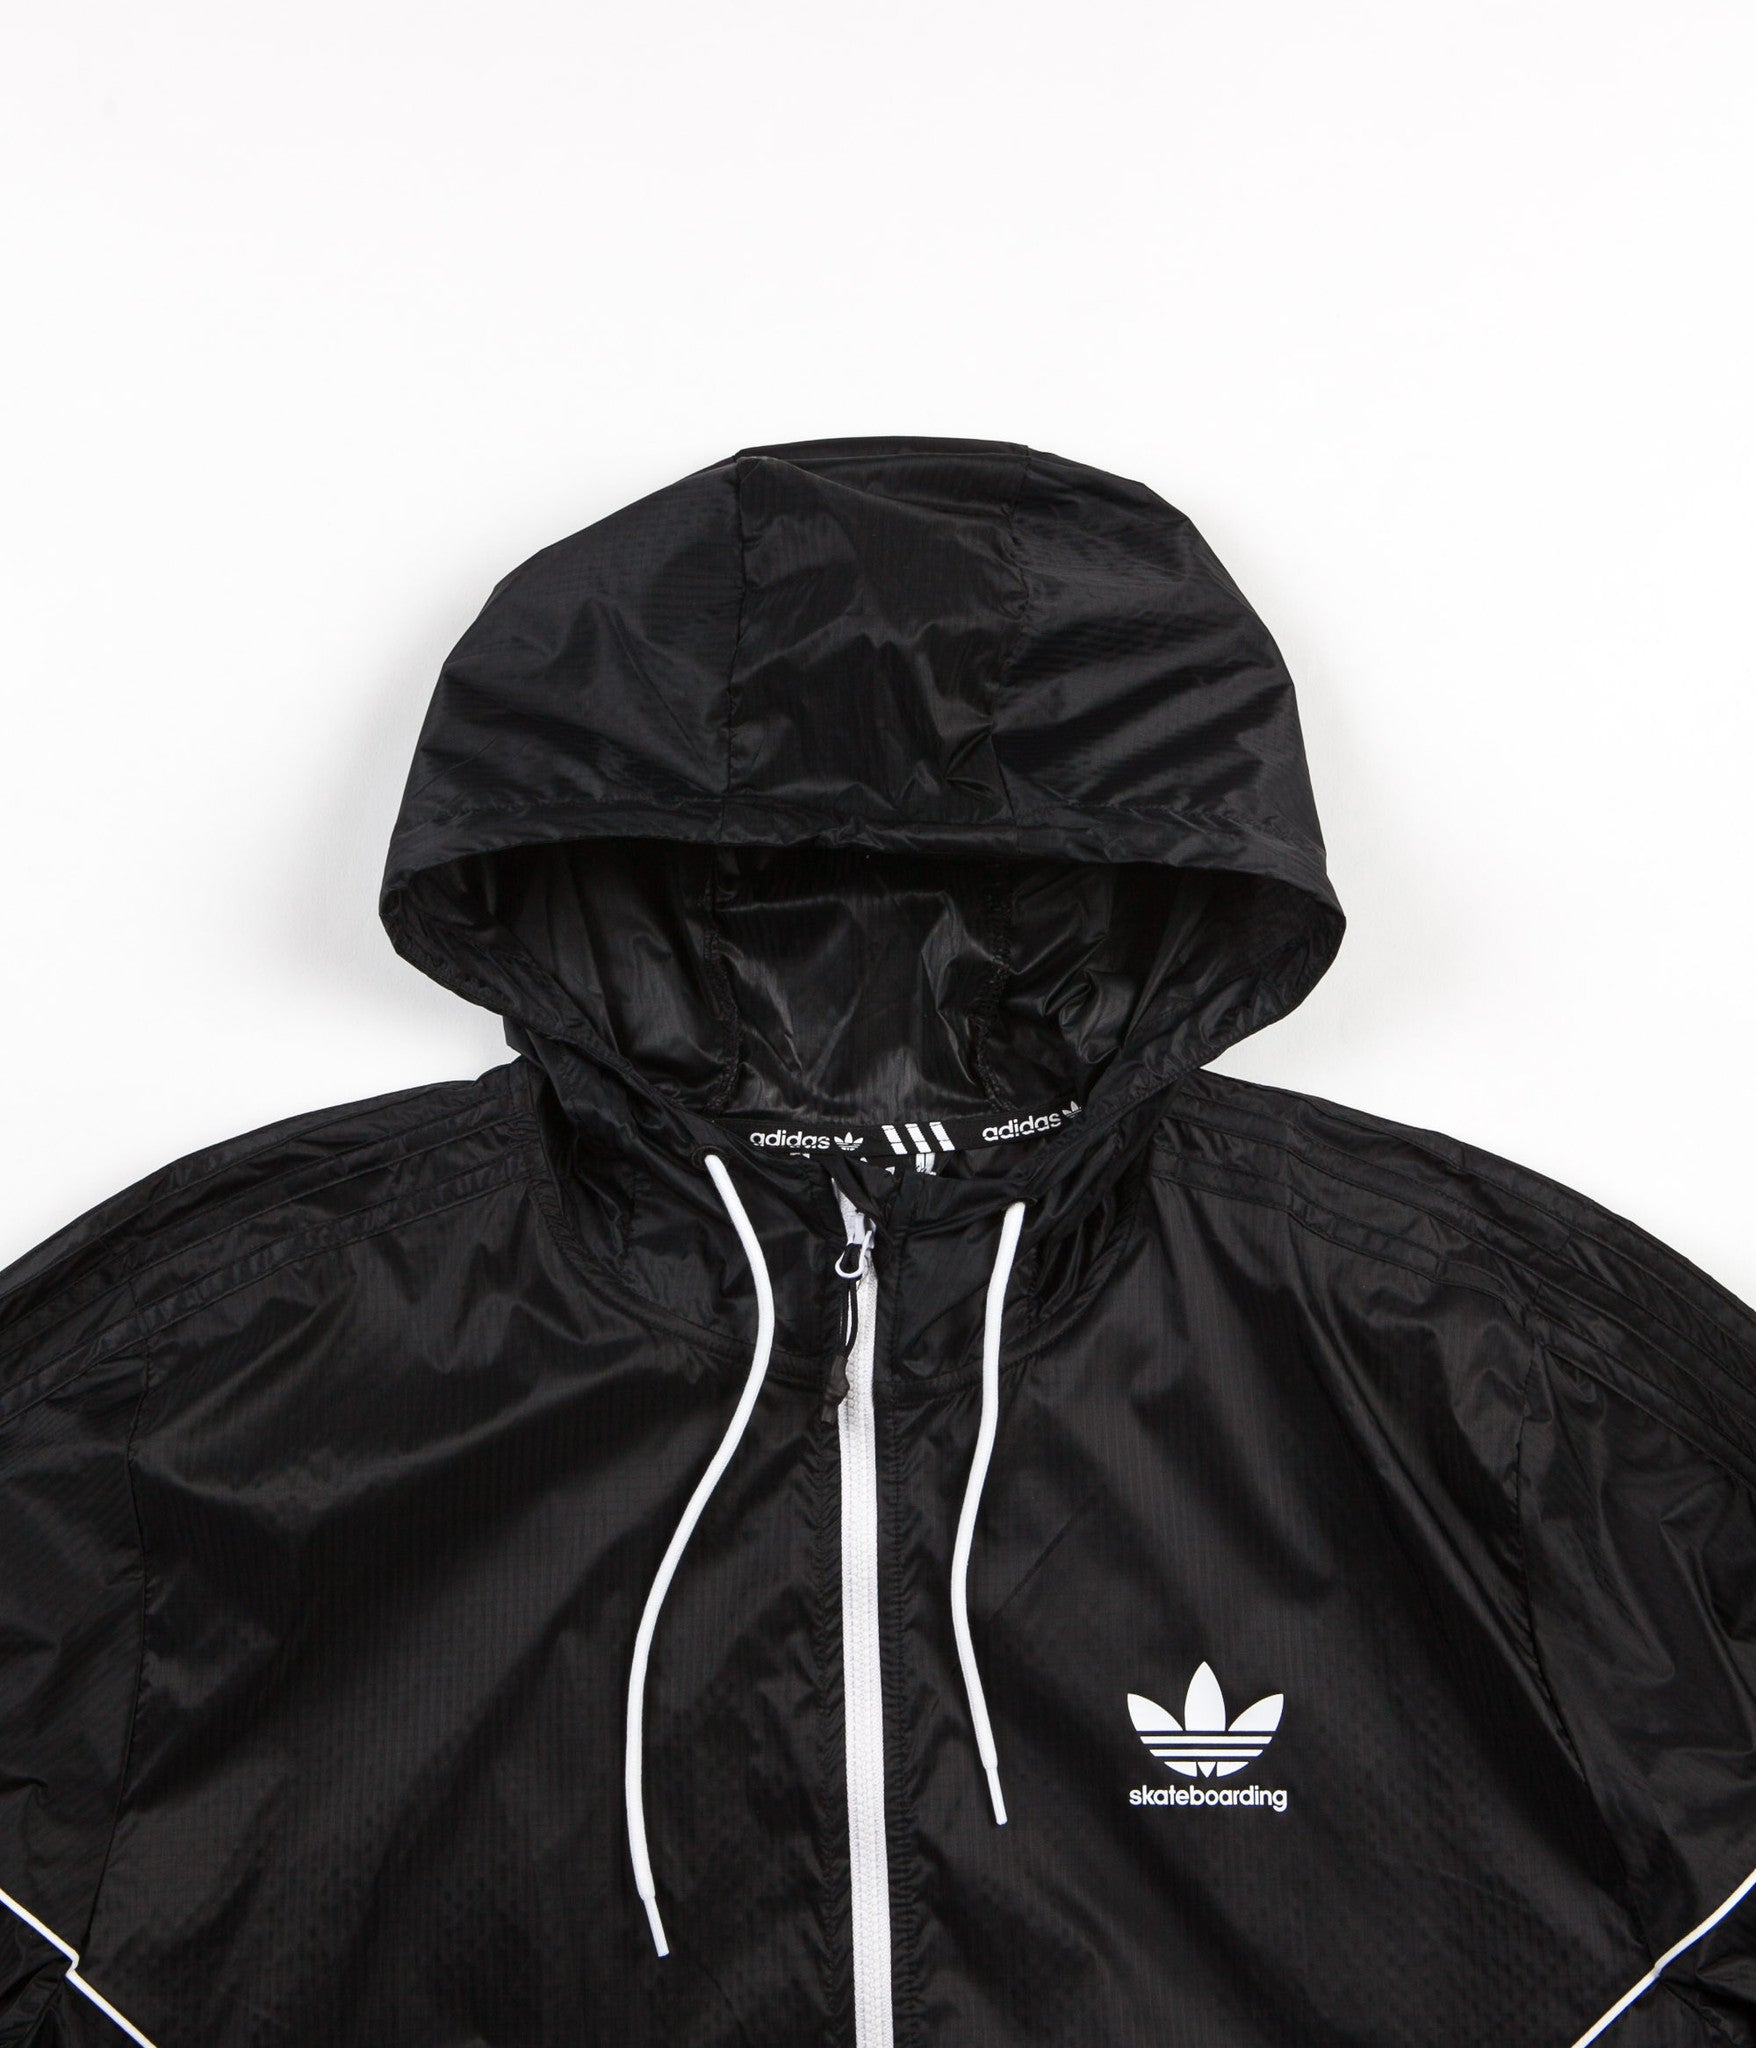 Adidas 3.0 Tech Jacket - Black